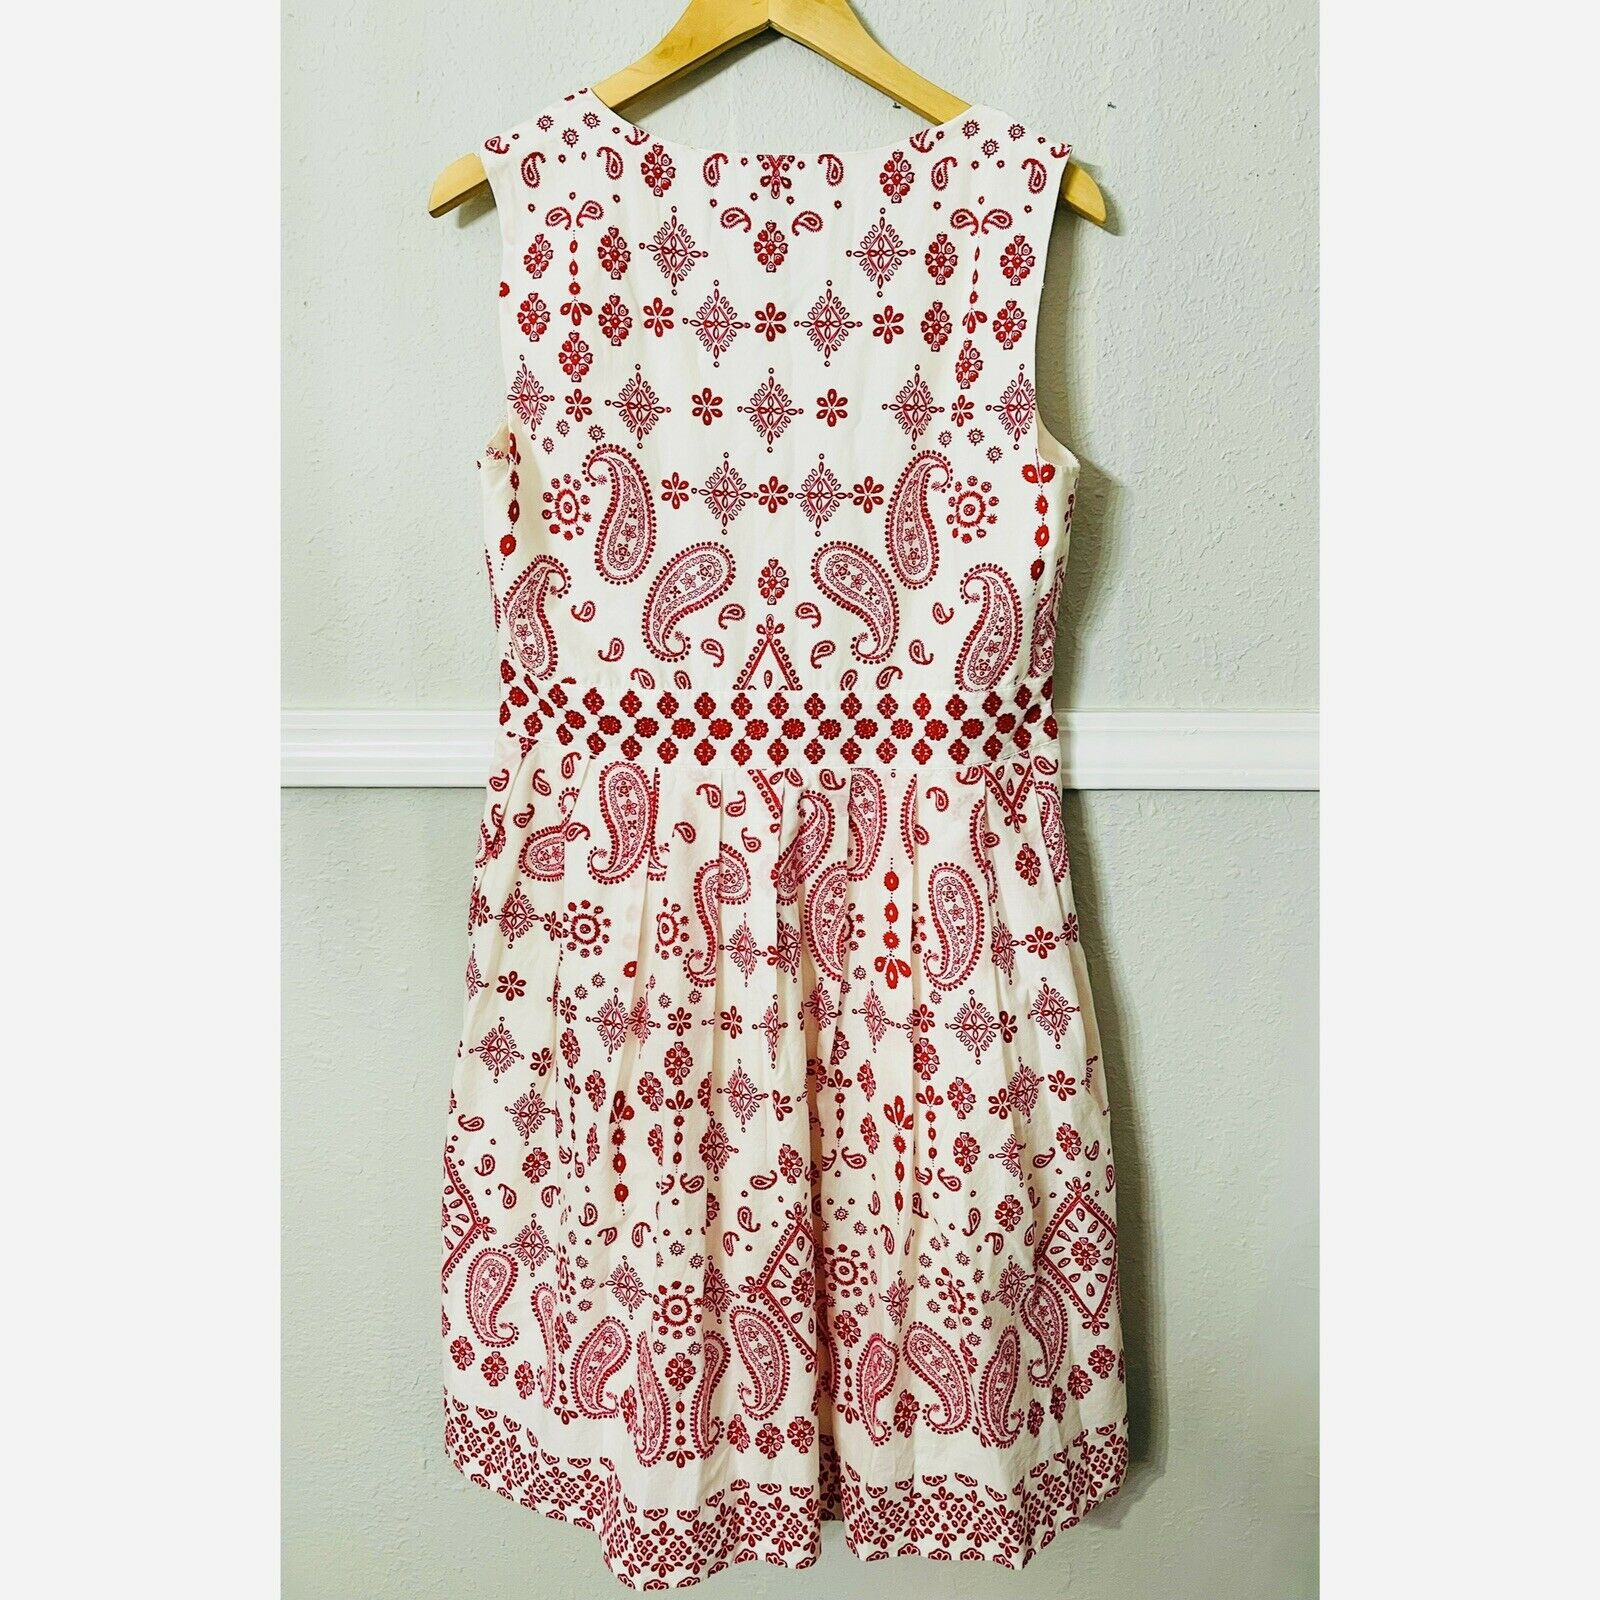 talbots embroidered dress - image 2